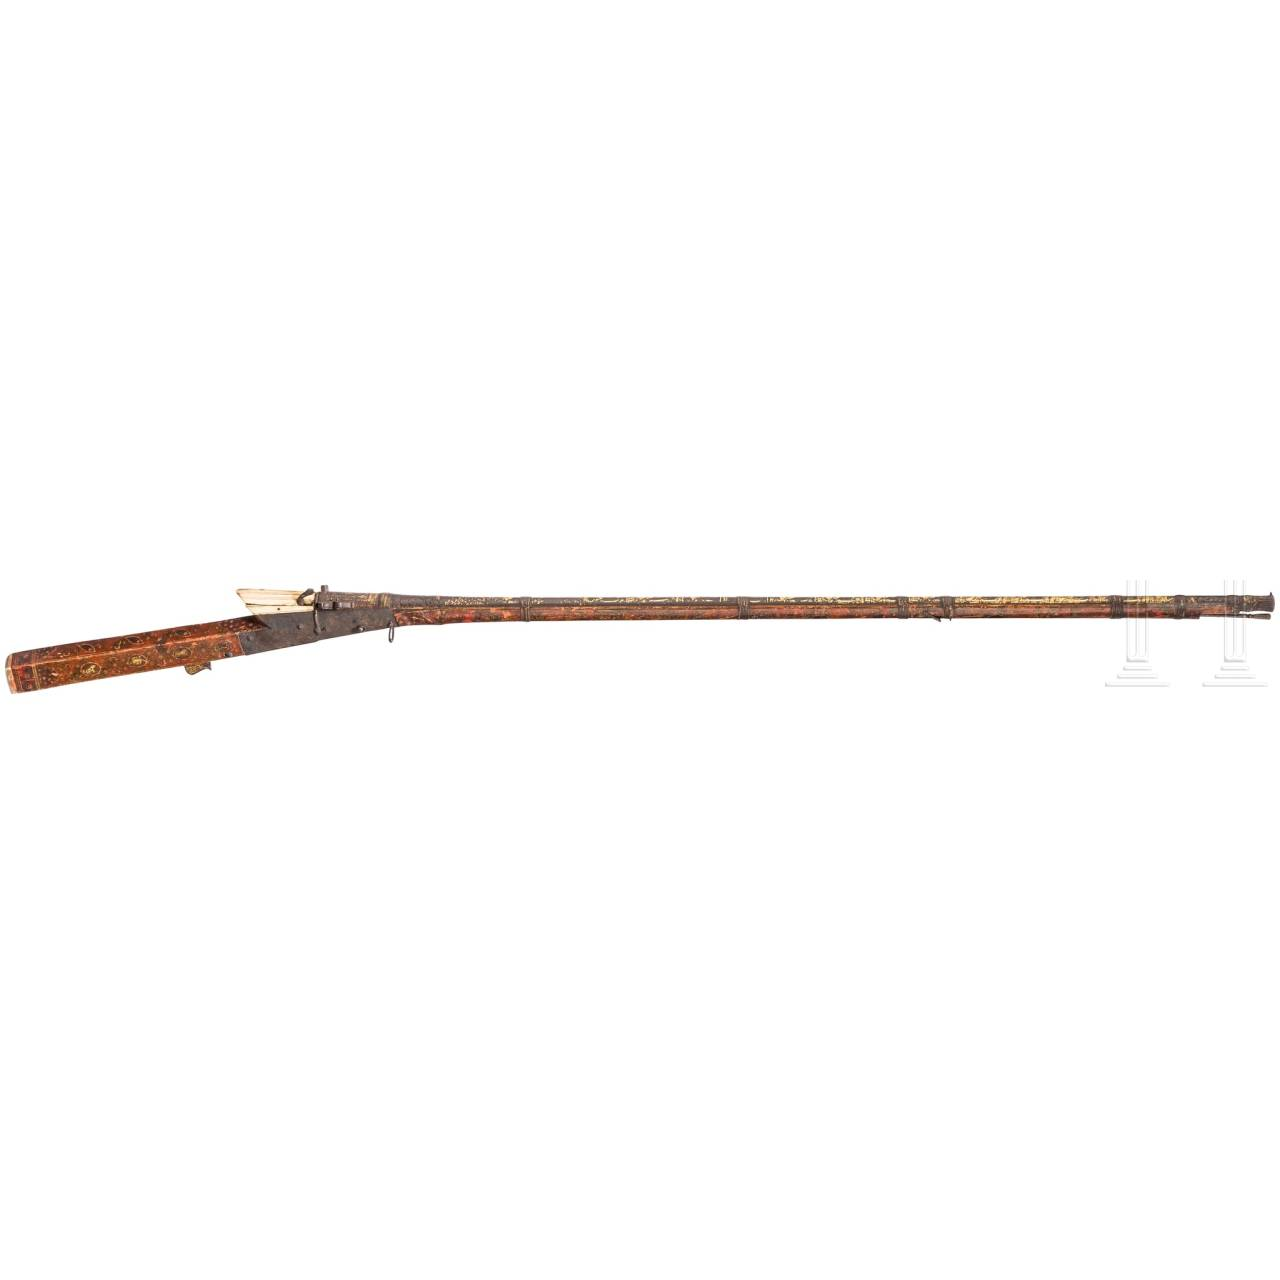 An Indian matchlock musket with gold inlaid barrel, ca. 1800